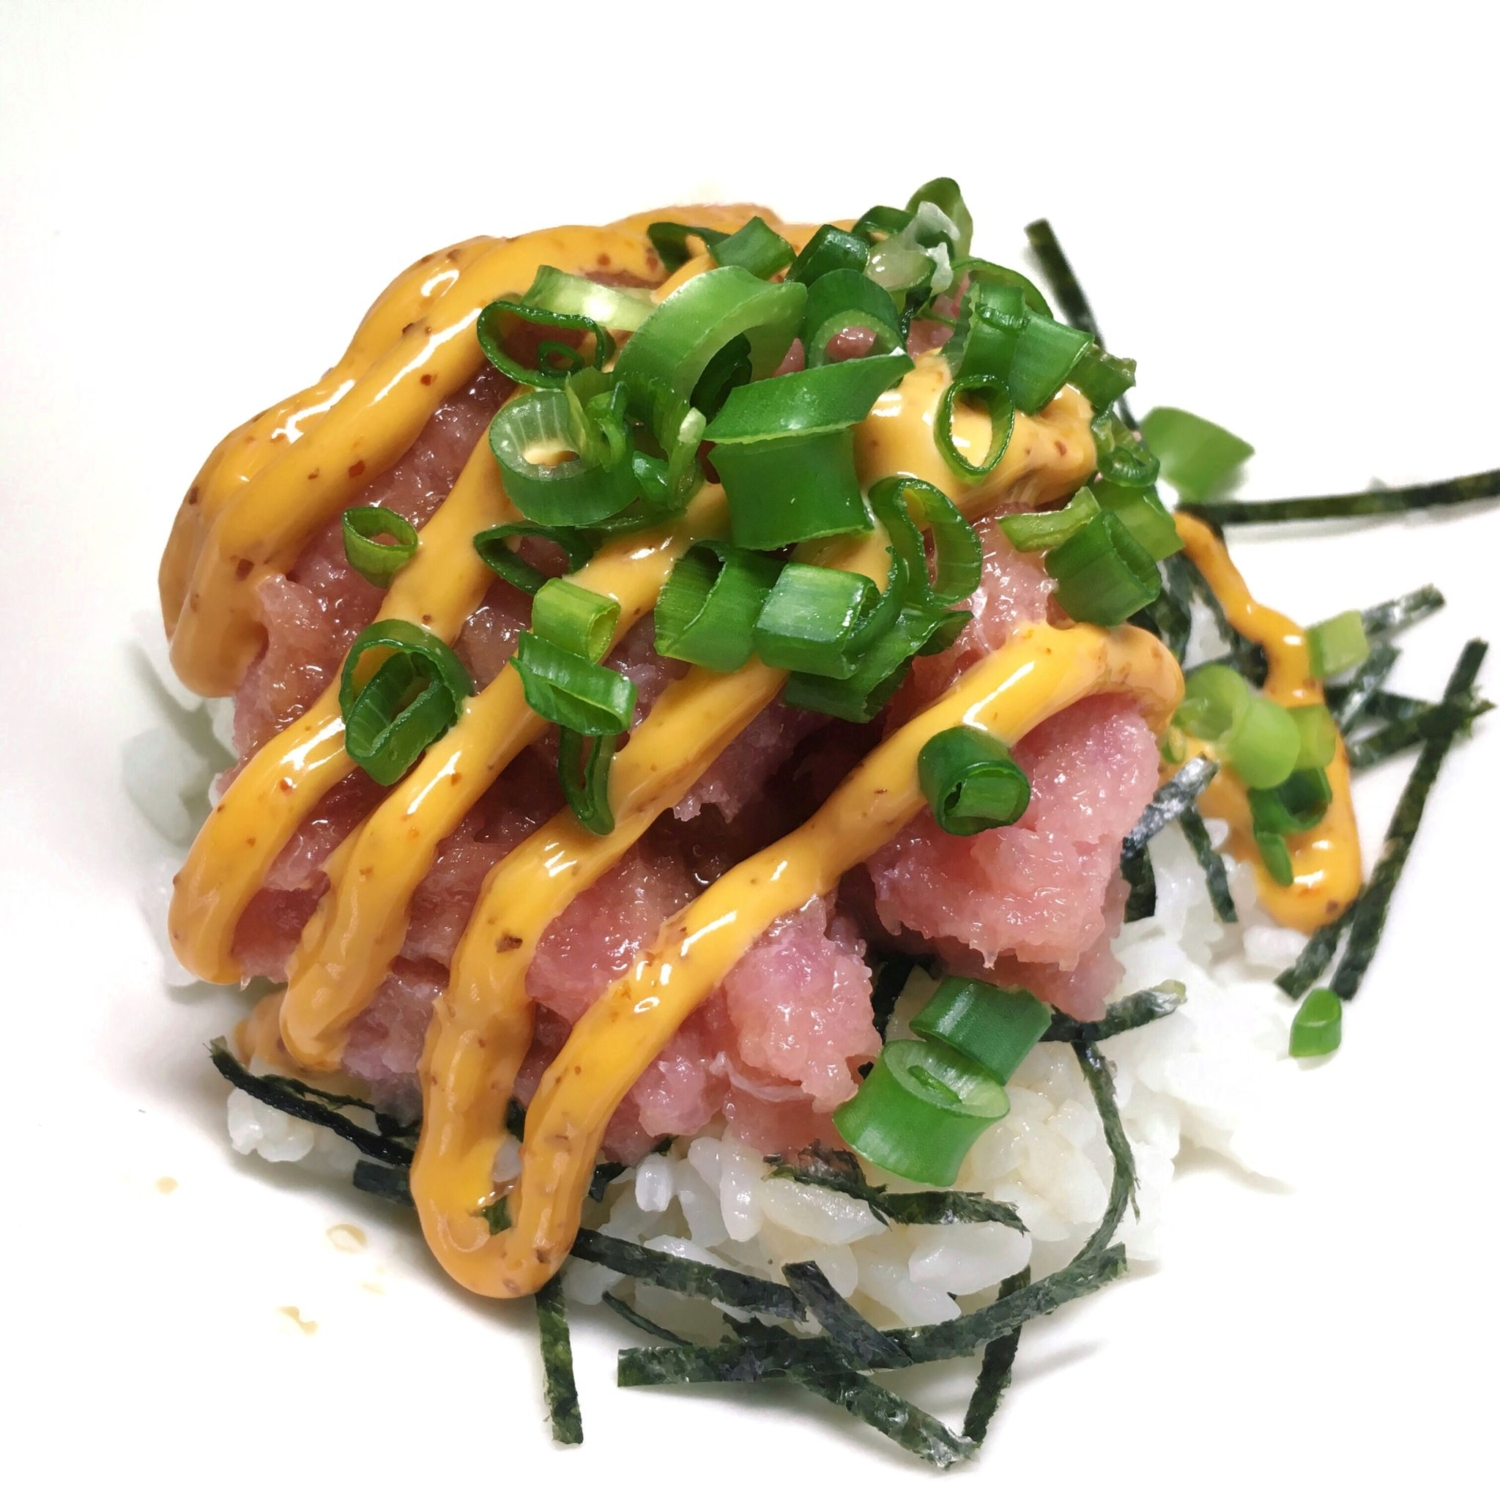 Spicy Tuna Don - The Horse's Mouth